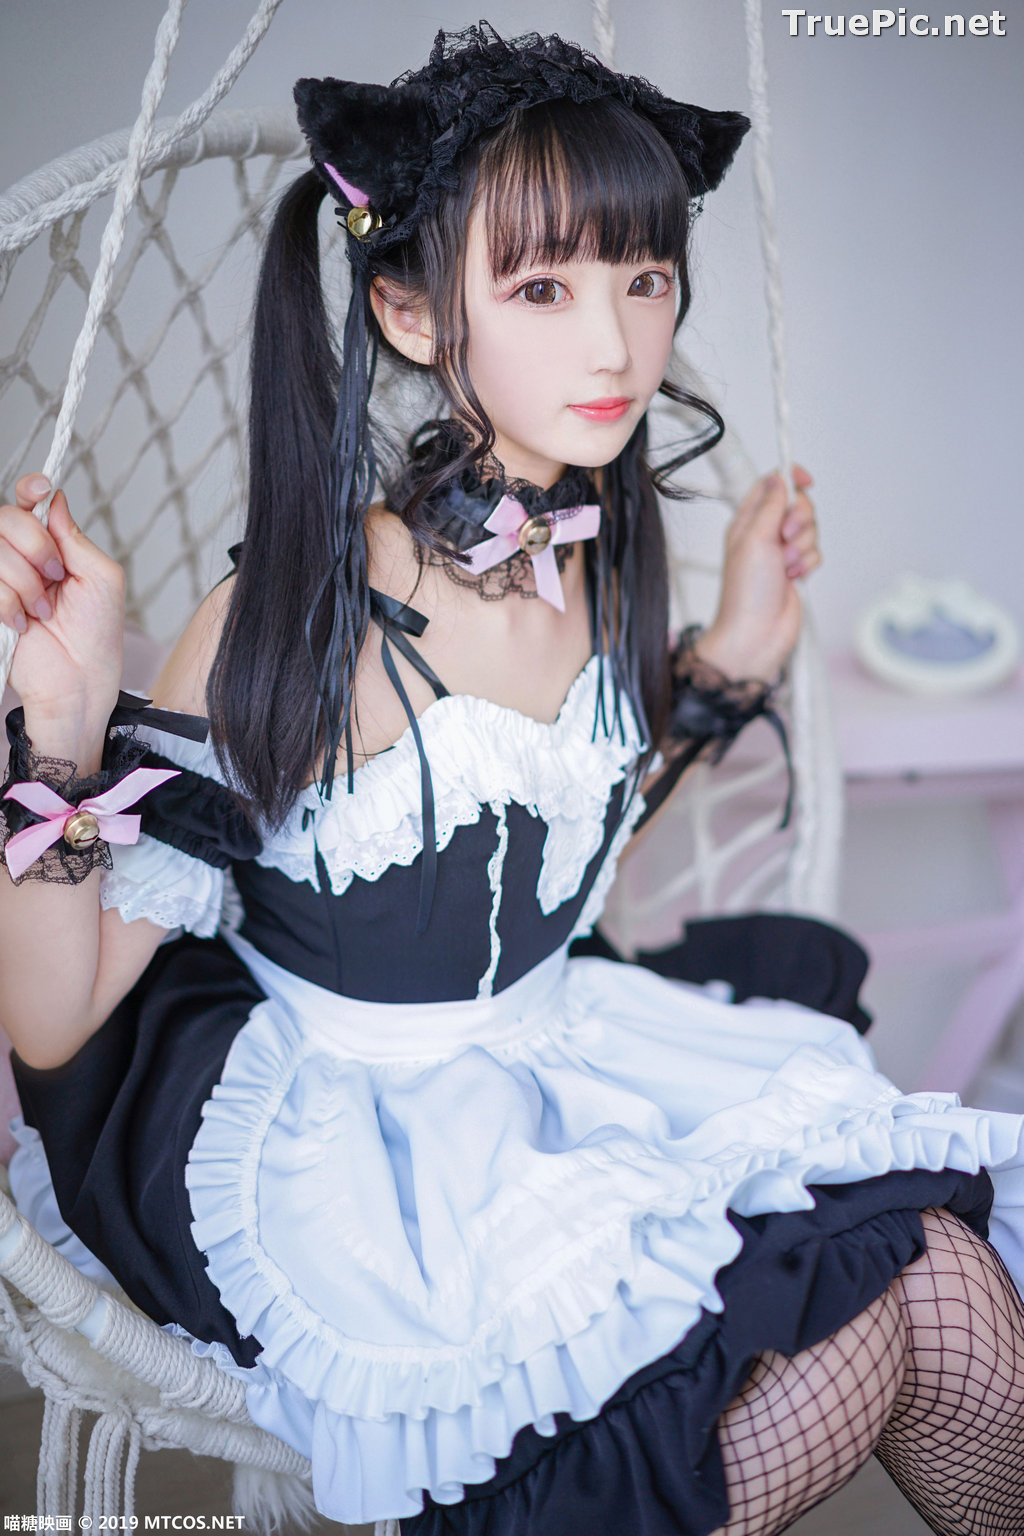 Image [MTCos] 喵糖映画 Vol.051 - Chinese Cute Model - Lovely Maid Cat - TruePic.net - Picture-7